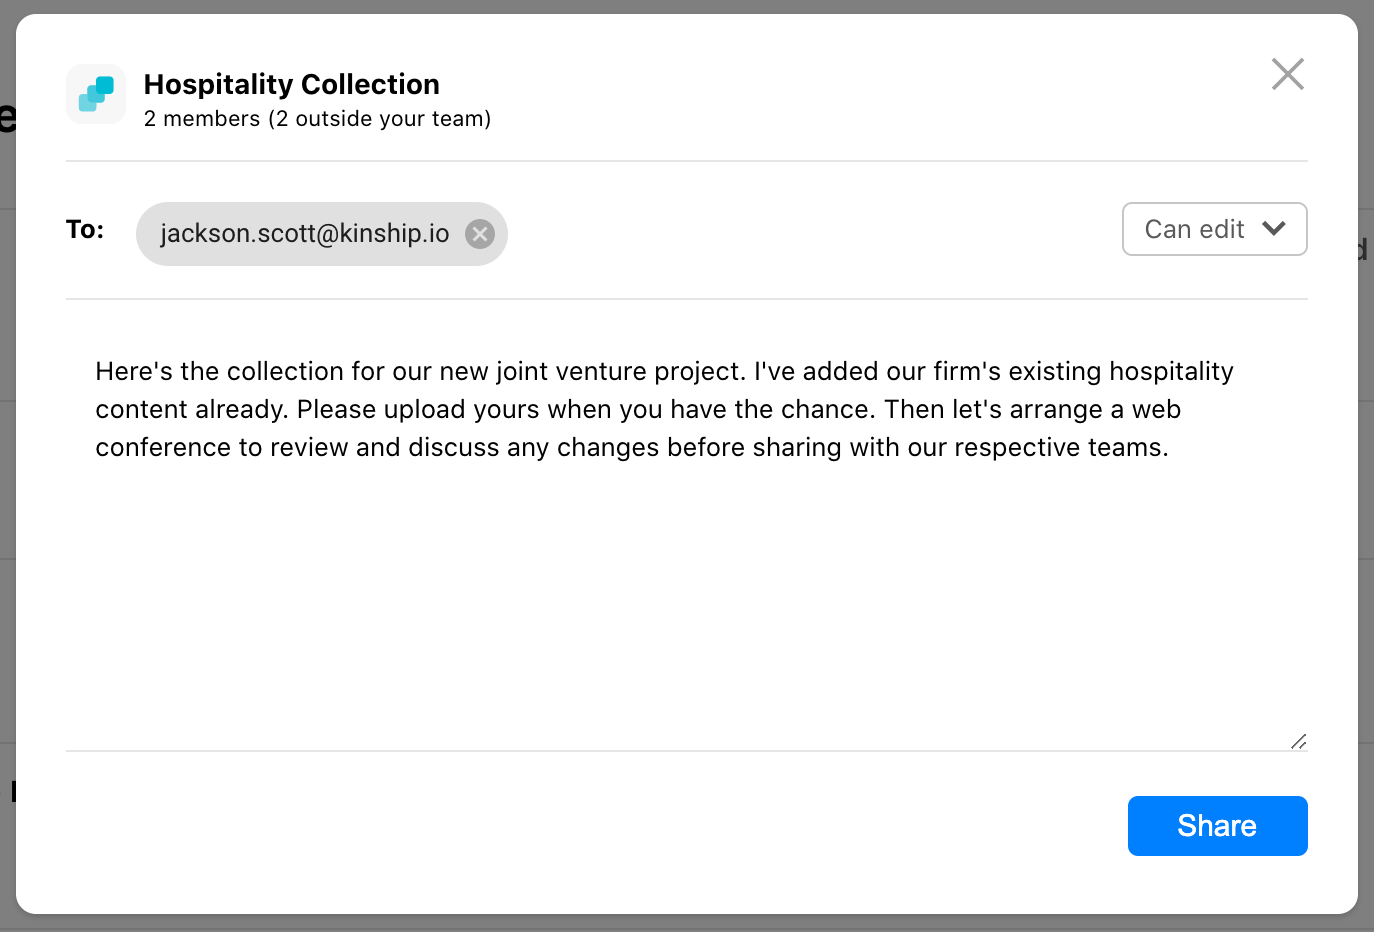 Share dialog with dropdown for recipient permissions and optional notification message.